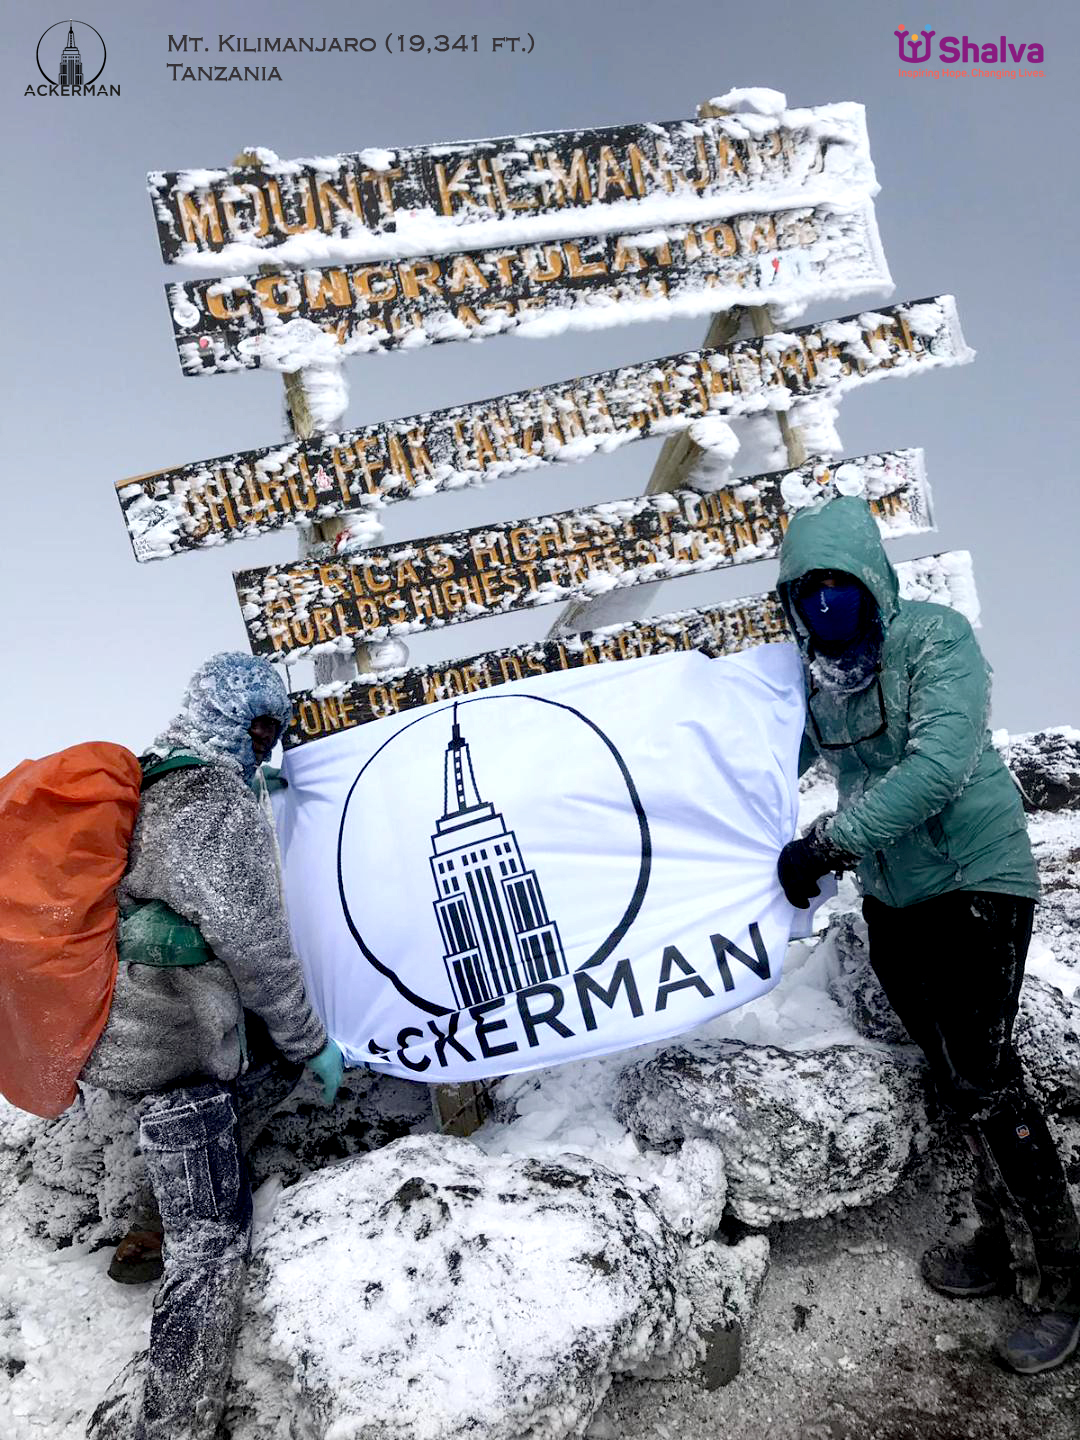 Ackerman on the Mountain Peak - Oct  2018.jpg